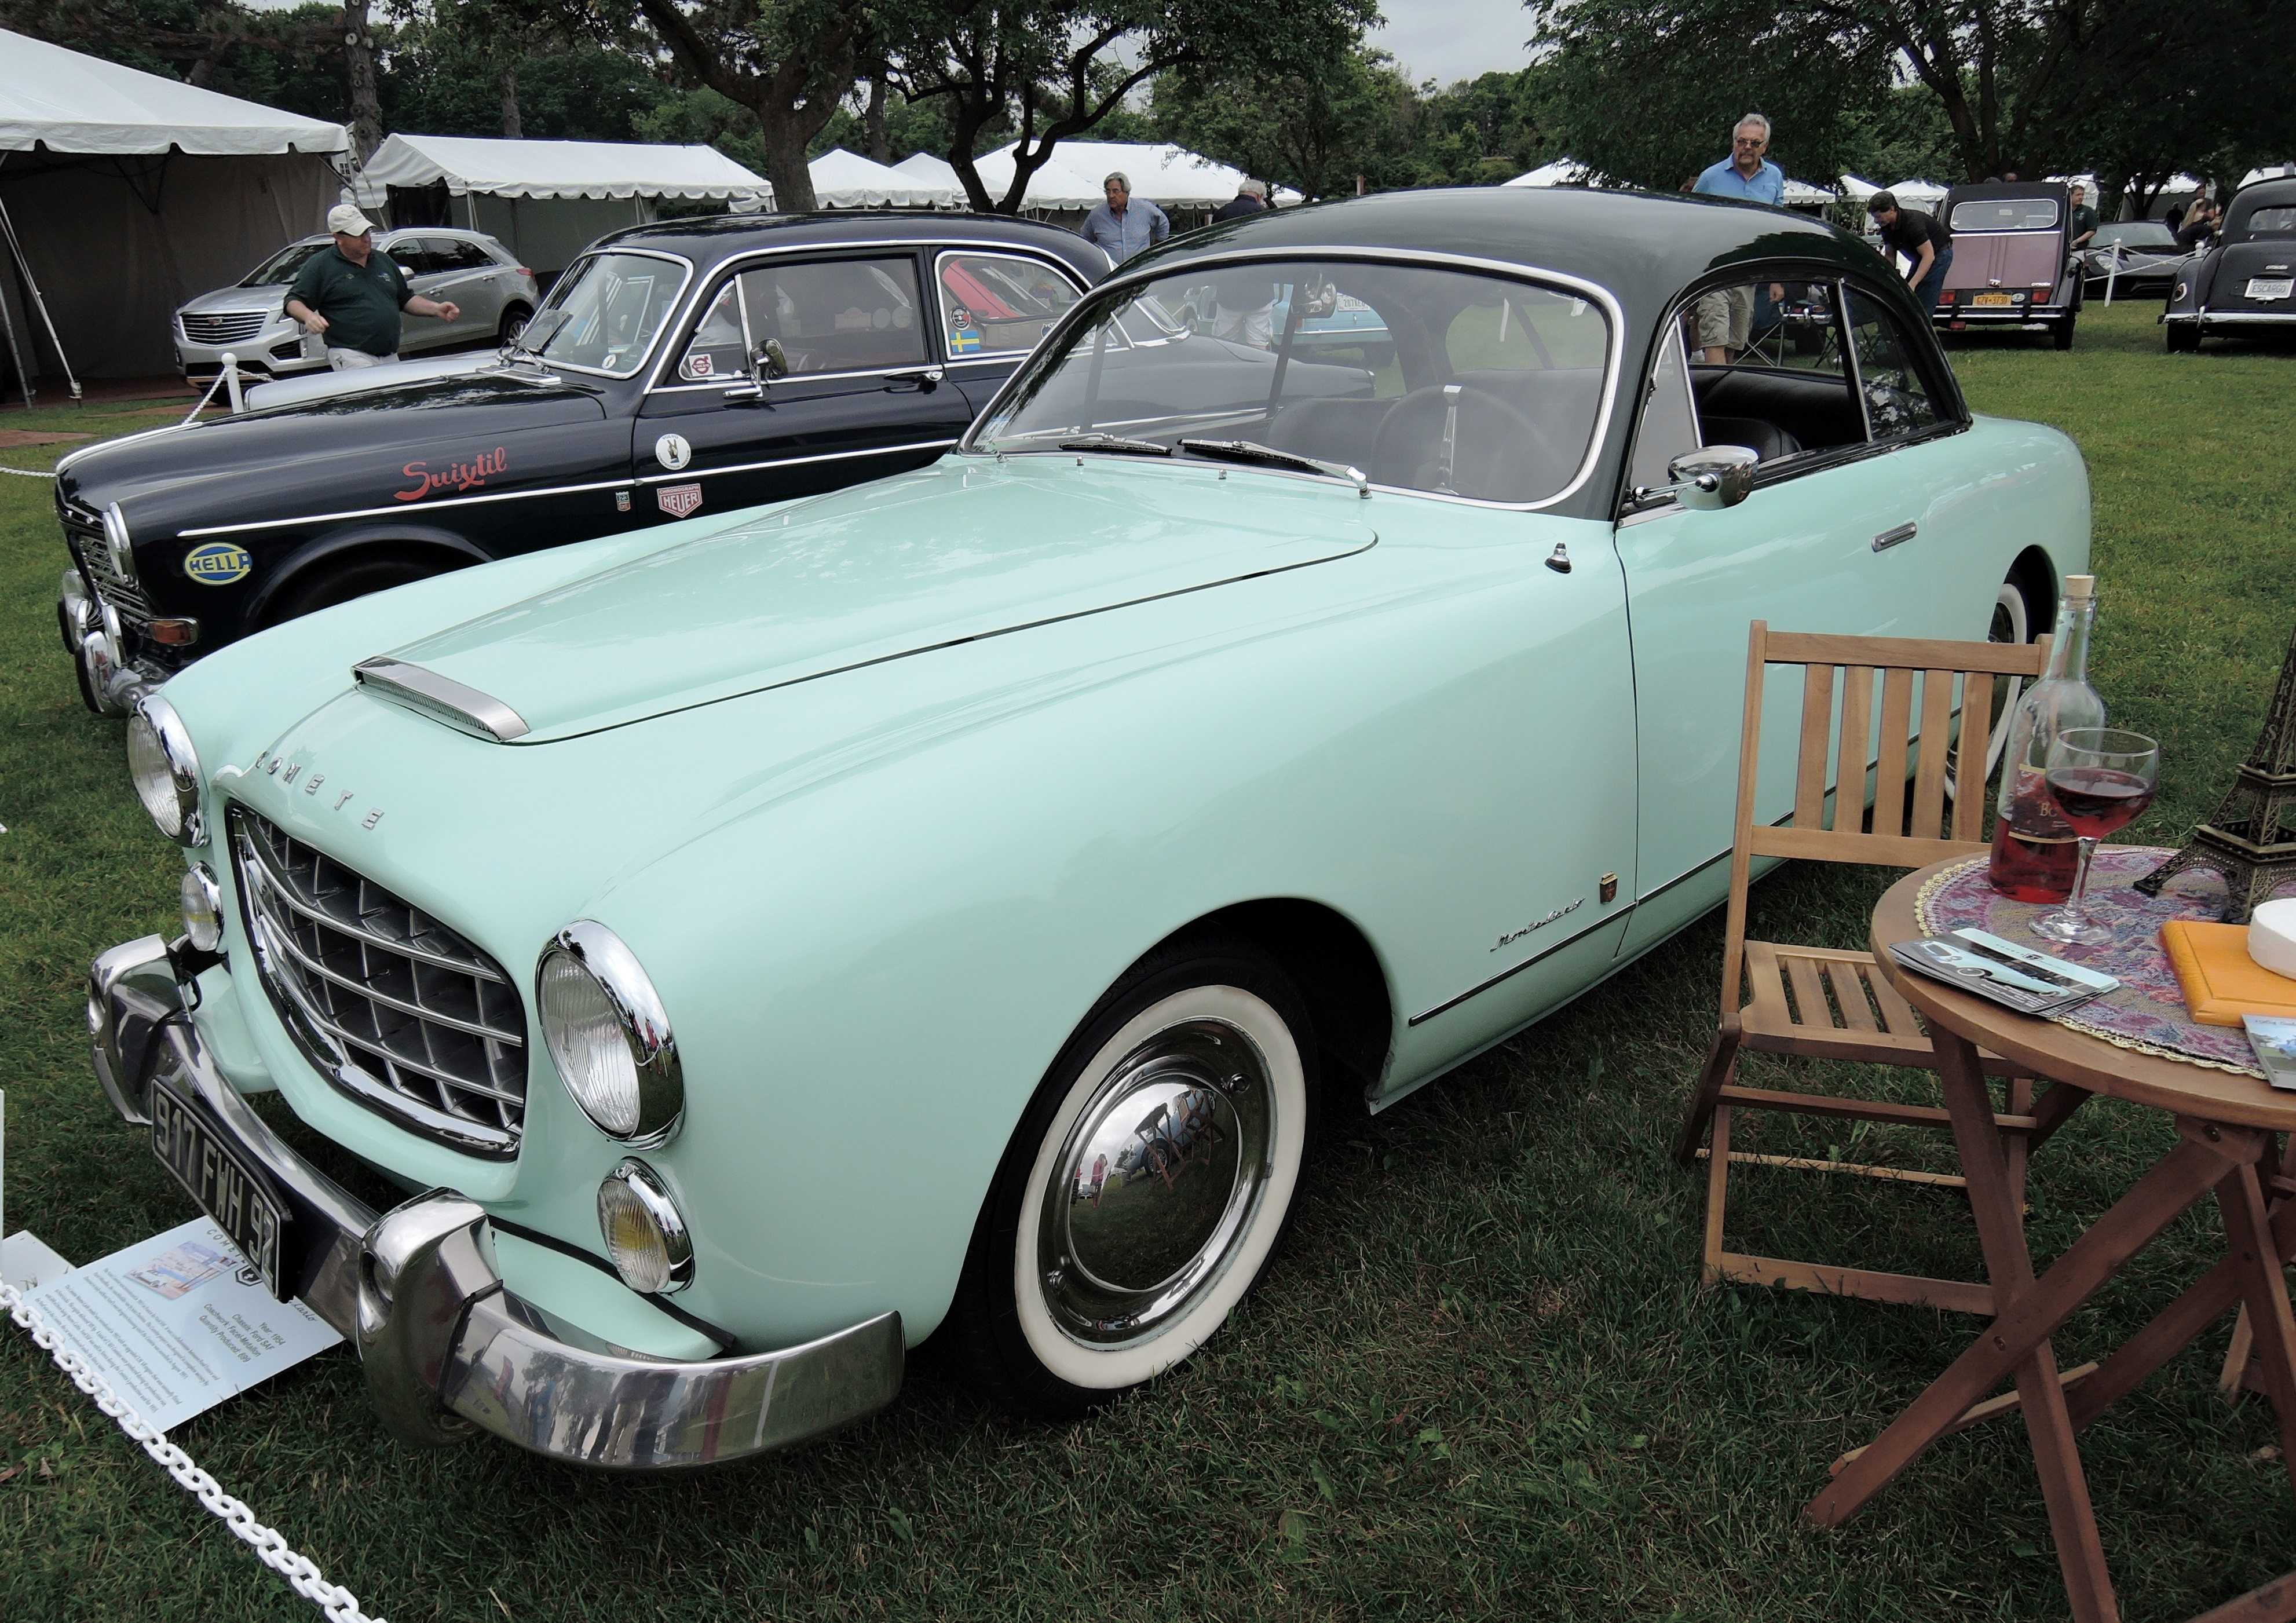 Greenwich Concours Delegance Sunday The Auto Blonde 1954 Ford Cars For Sale Green Comete Monte Carlo